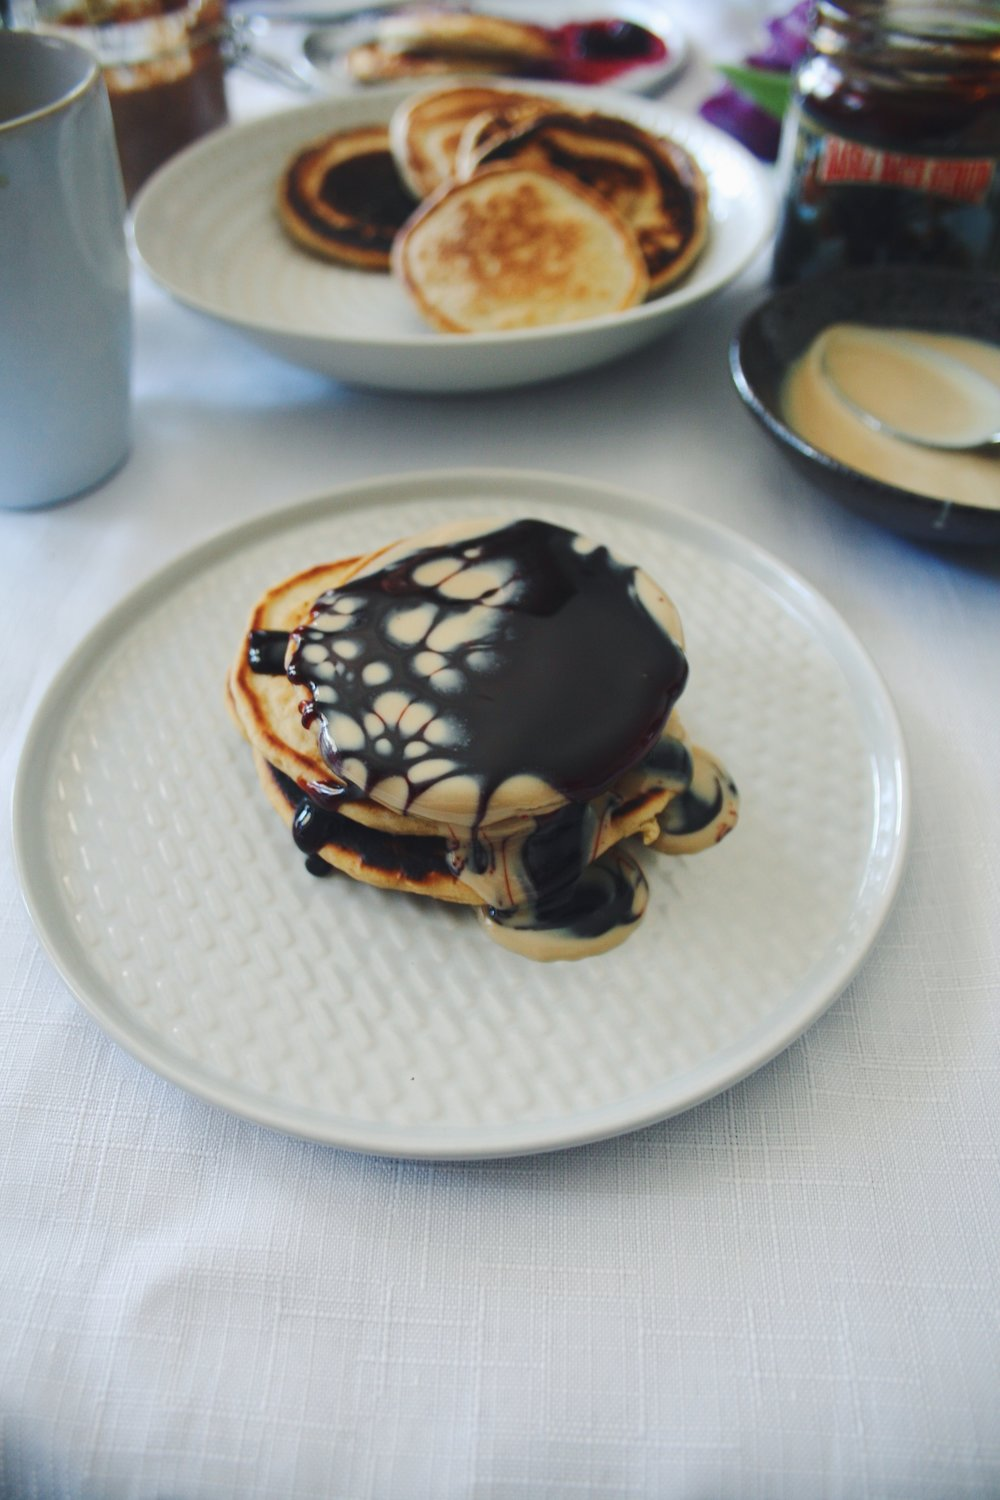 Pancakes drizzled with tahini & date syrup